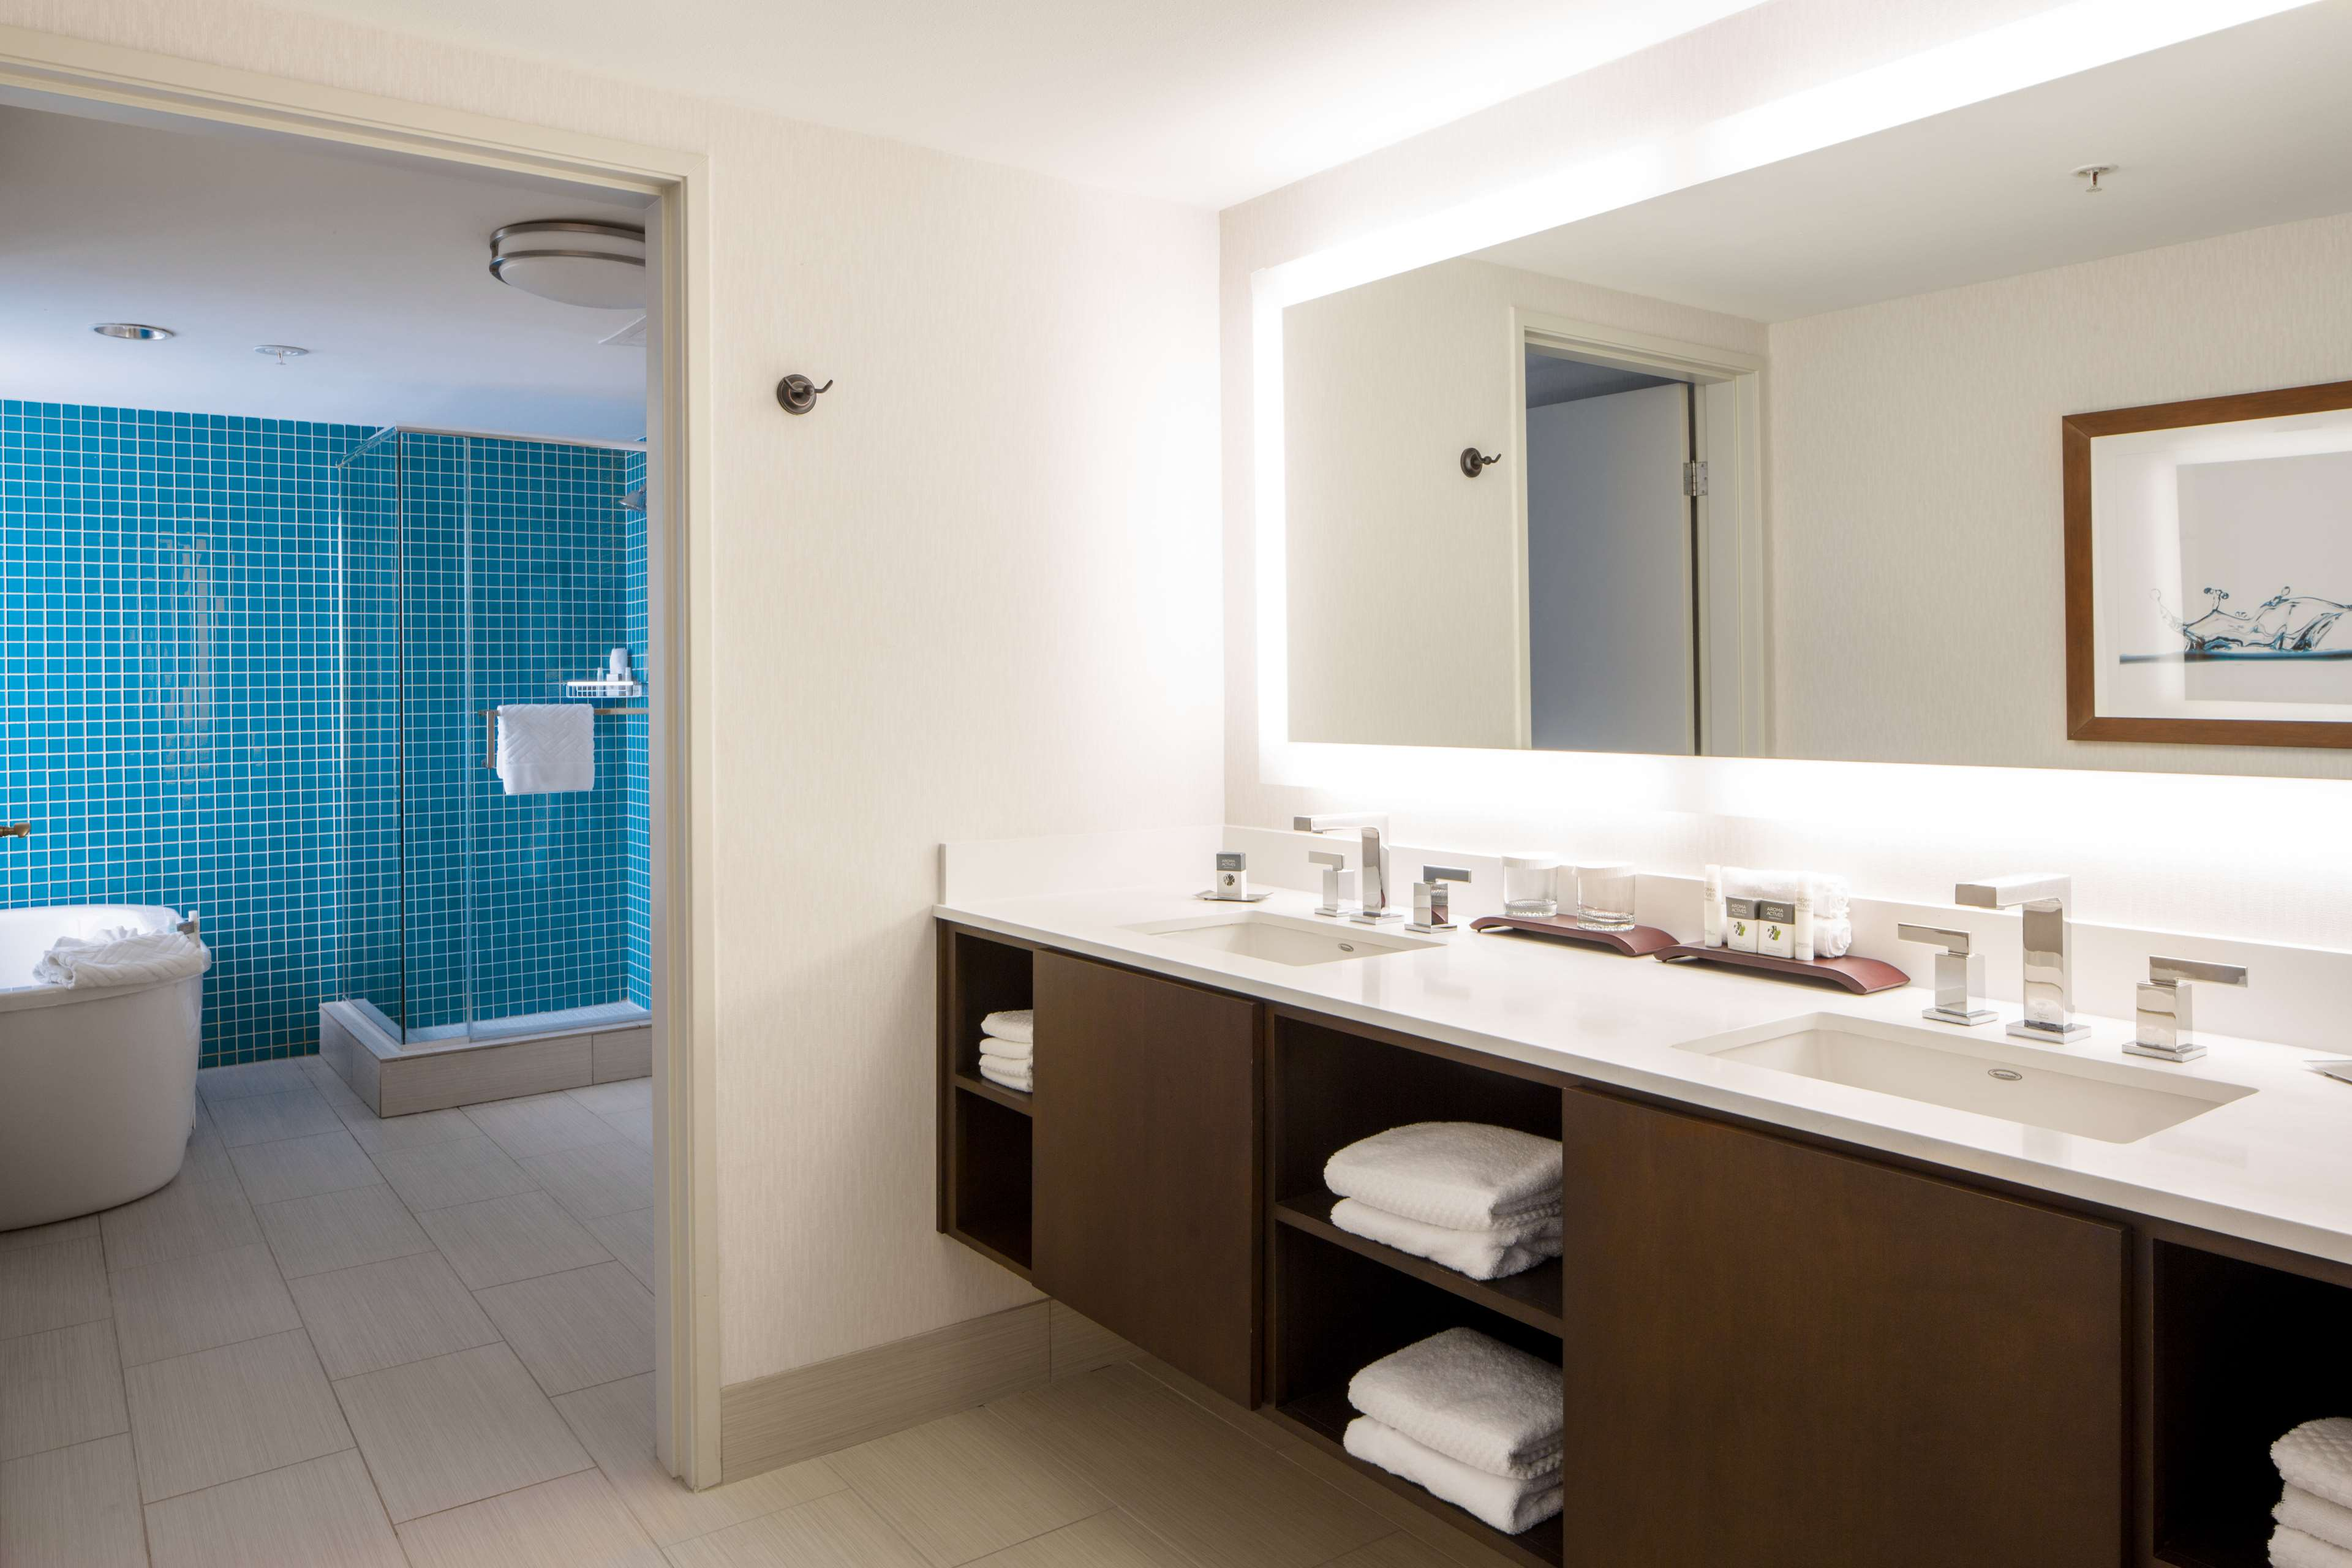 DoubleTree Suites by Hilton Hotel Doheny Beach - Dana Point image 19